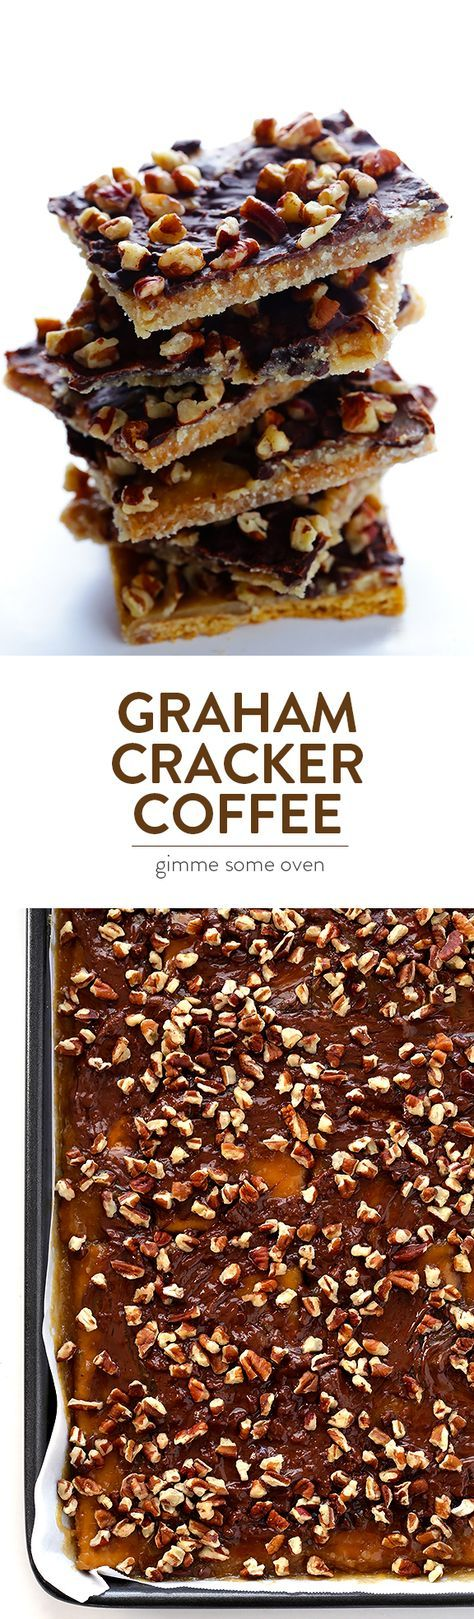 All you need are 5 simple ingredients to make this easy Graham Cracker Toffee.